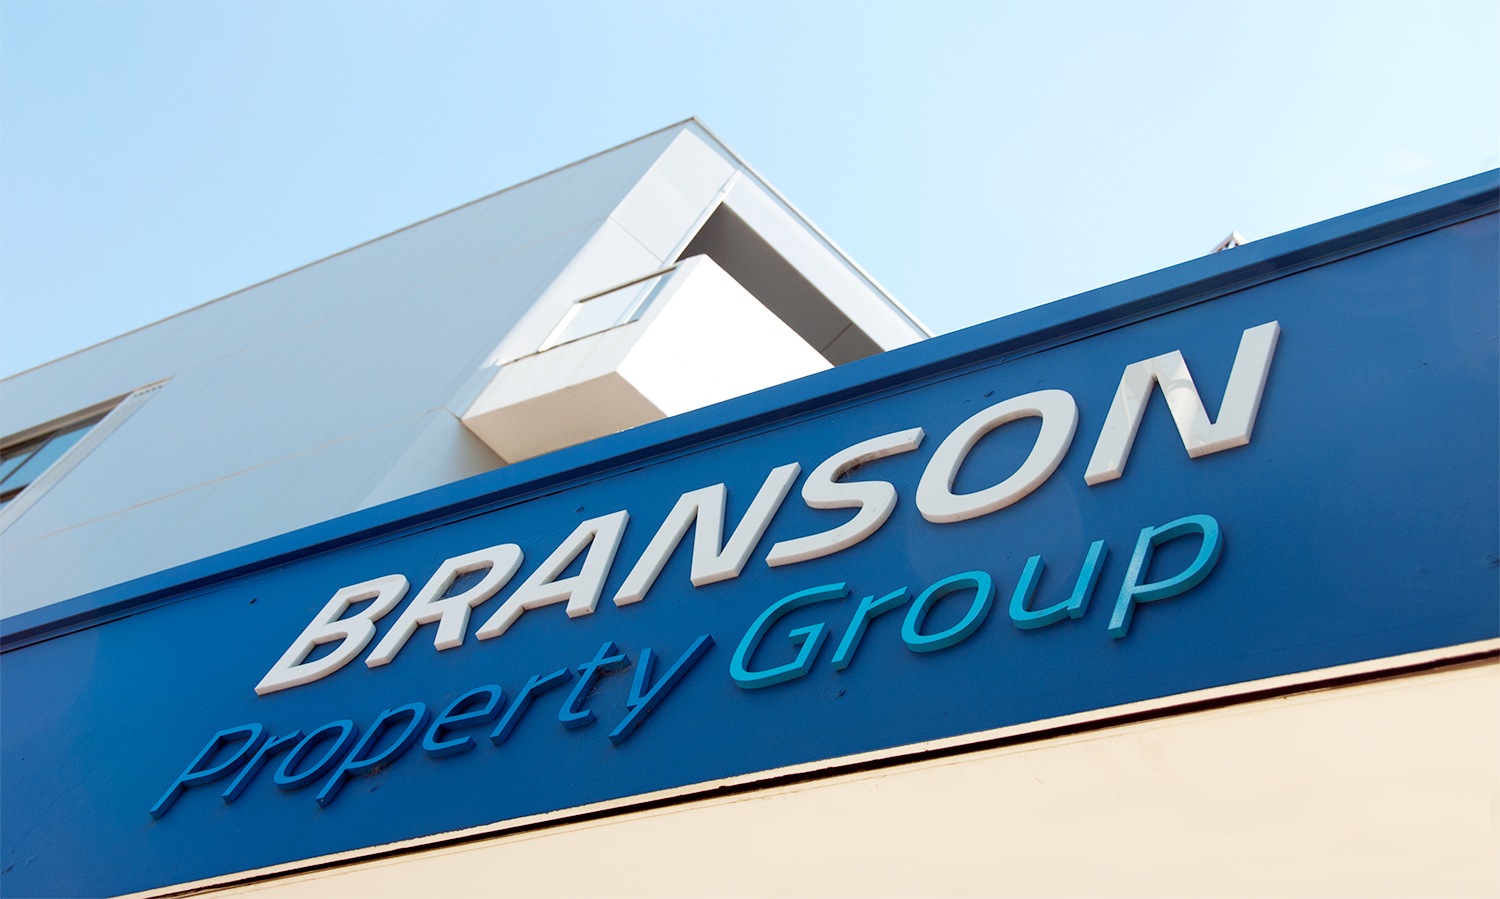 Gray Design Branson Property Group Signage